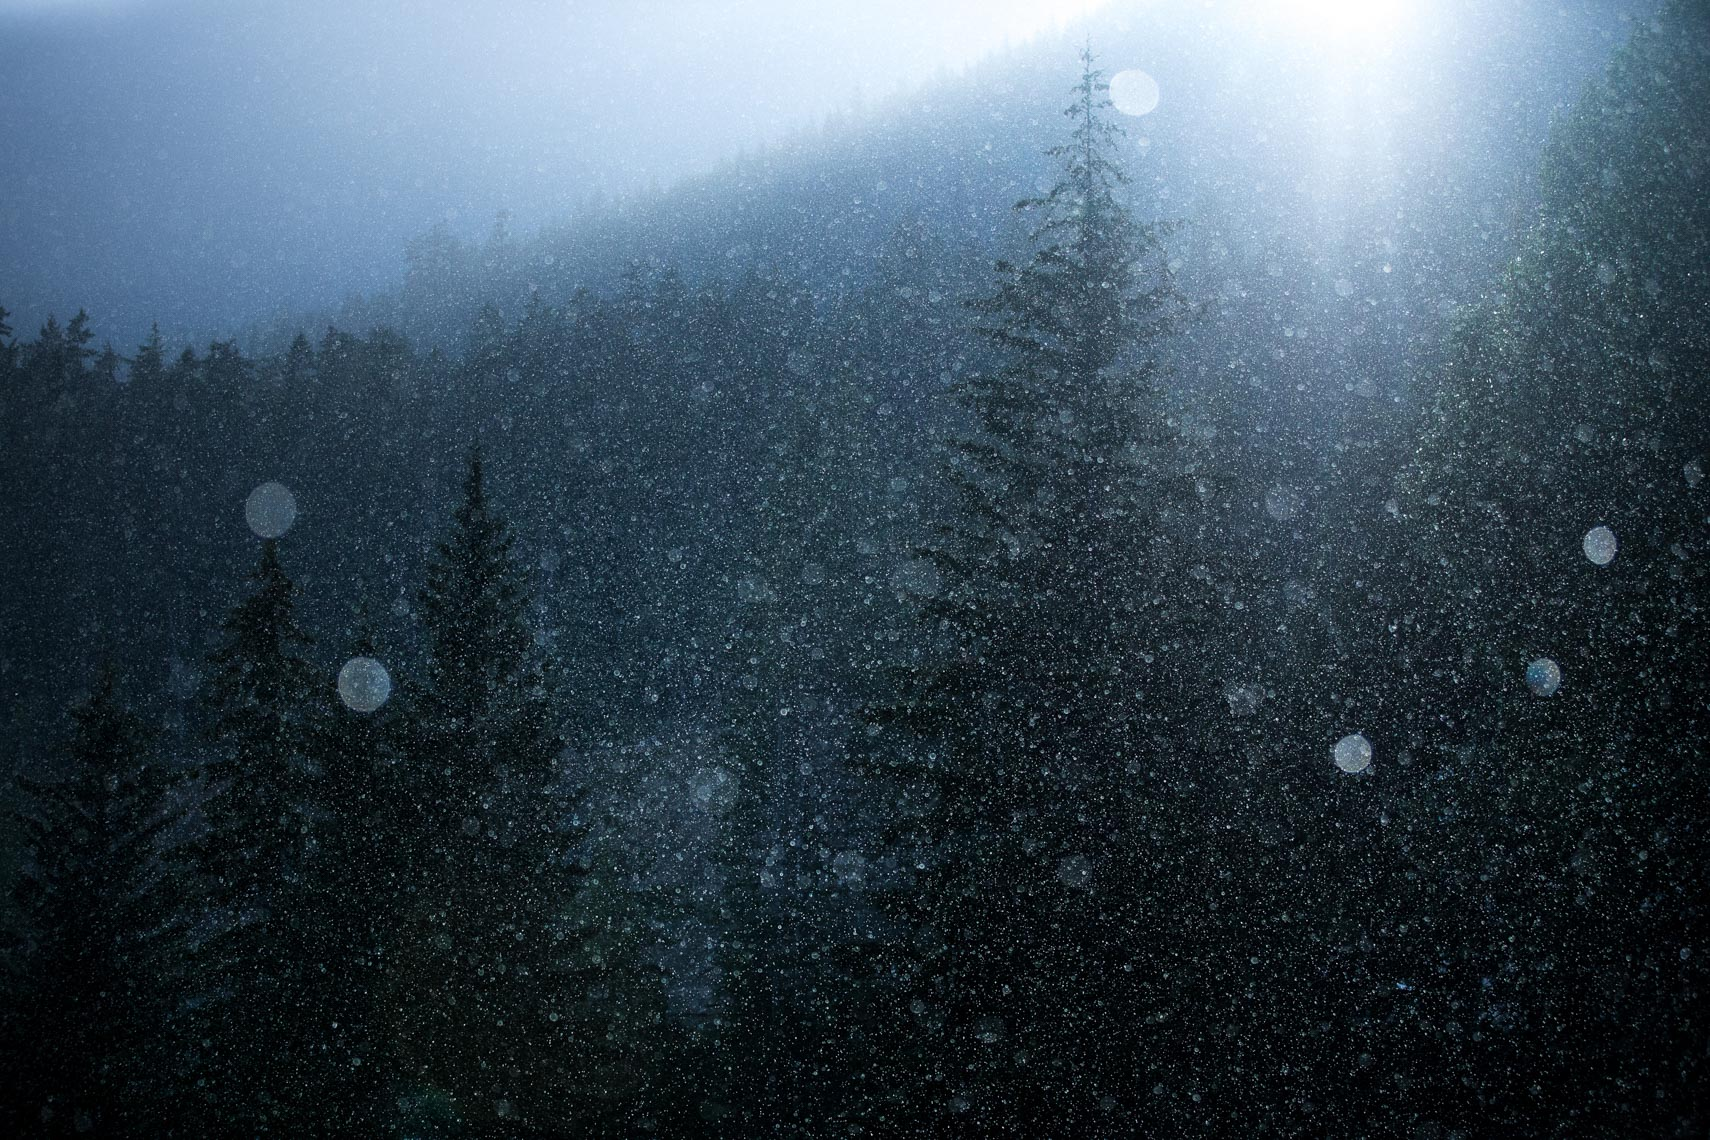 Whistler British Columbia tree and snowflake landscape photography image